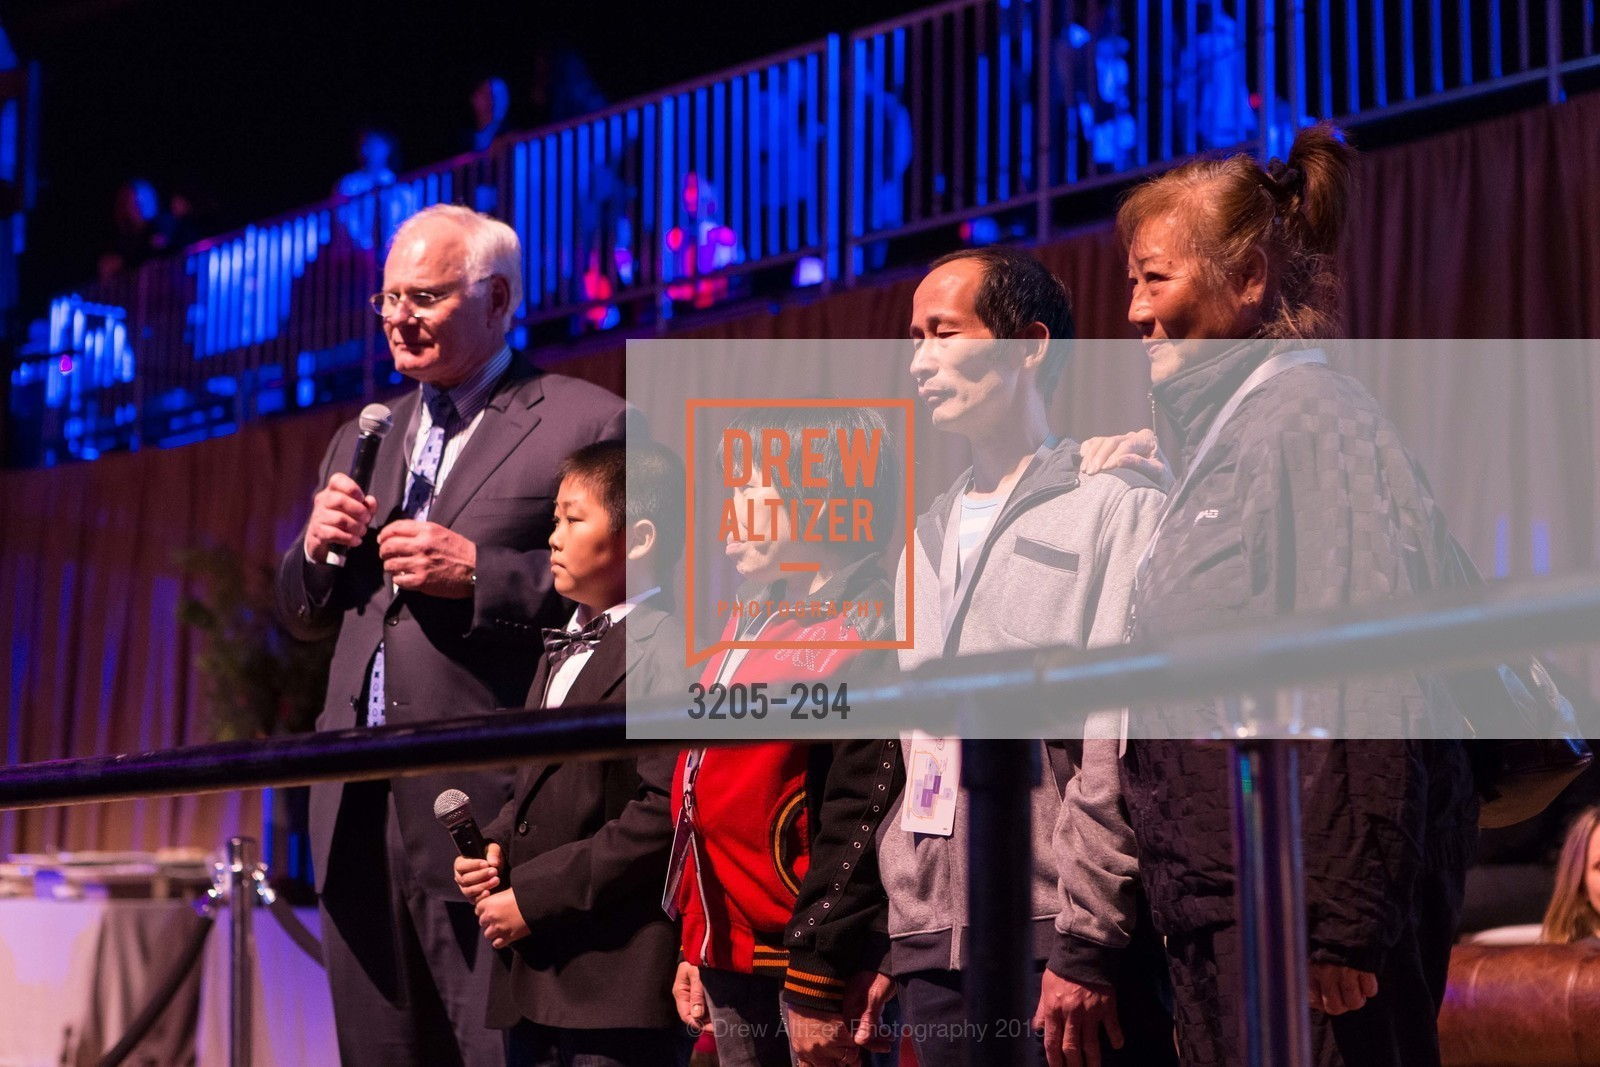 Mark Laret, Zhenkang Zhao, Grace Chan, Chong Zhao, The Concert For UCSF Benioff Children's Hospital, Pier 70, September 17th, 2015,Drew Altizer, Drew Altizer Photography, full-service agency, private events, San Francisco photographer, photographer california